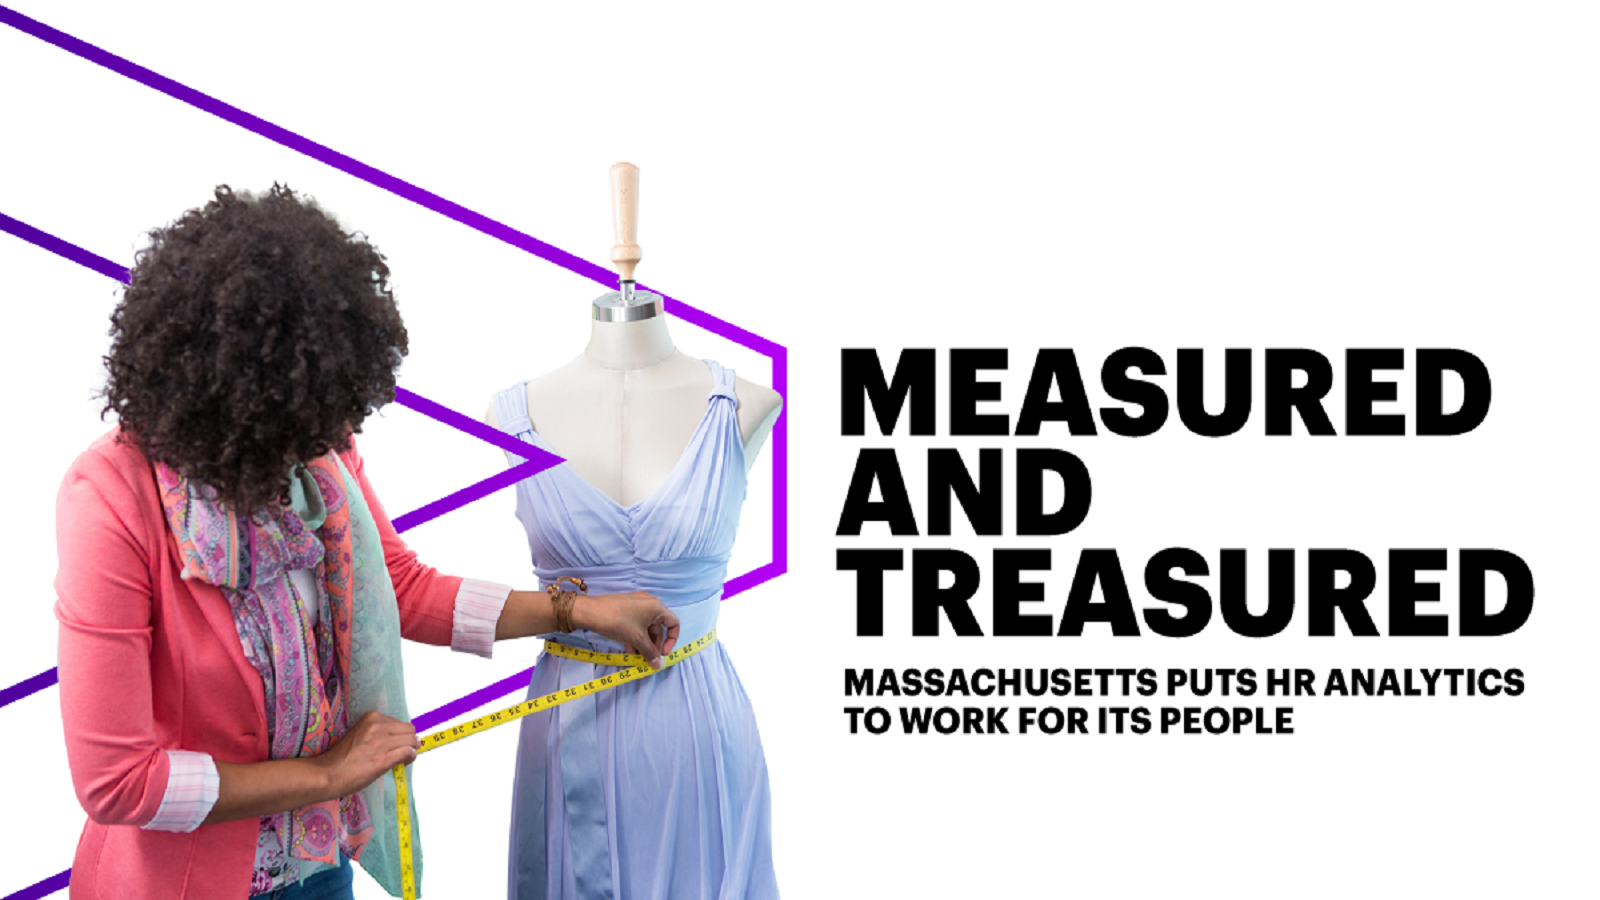 Measured and treasured: Massachusetts puts HR analytics to work for its people